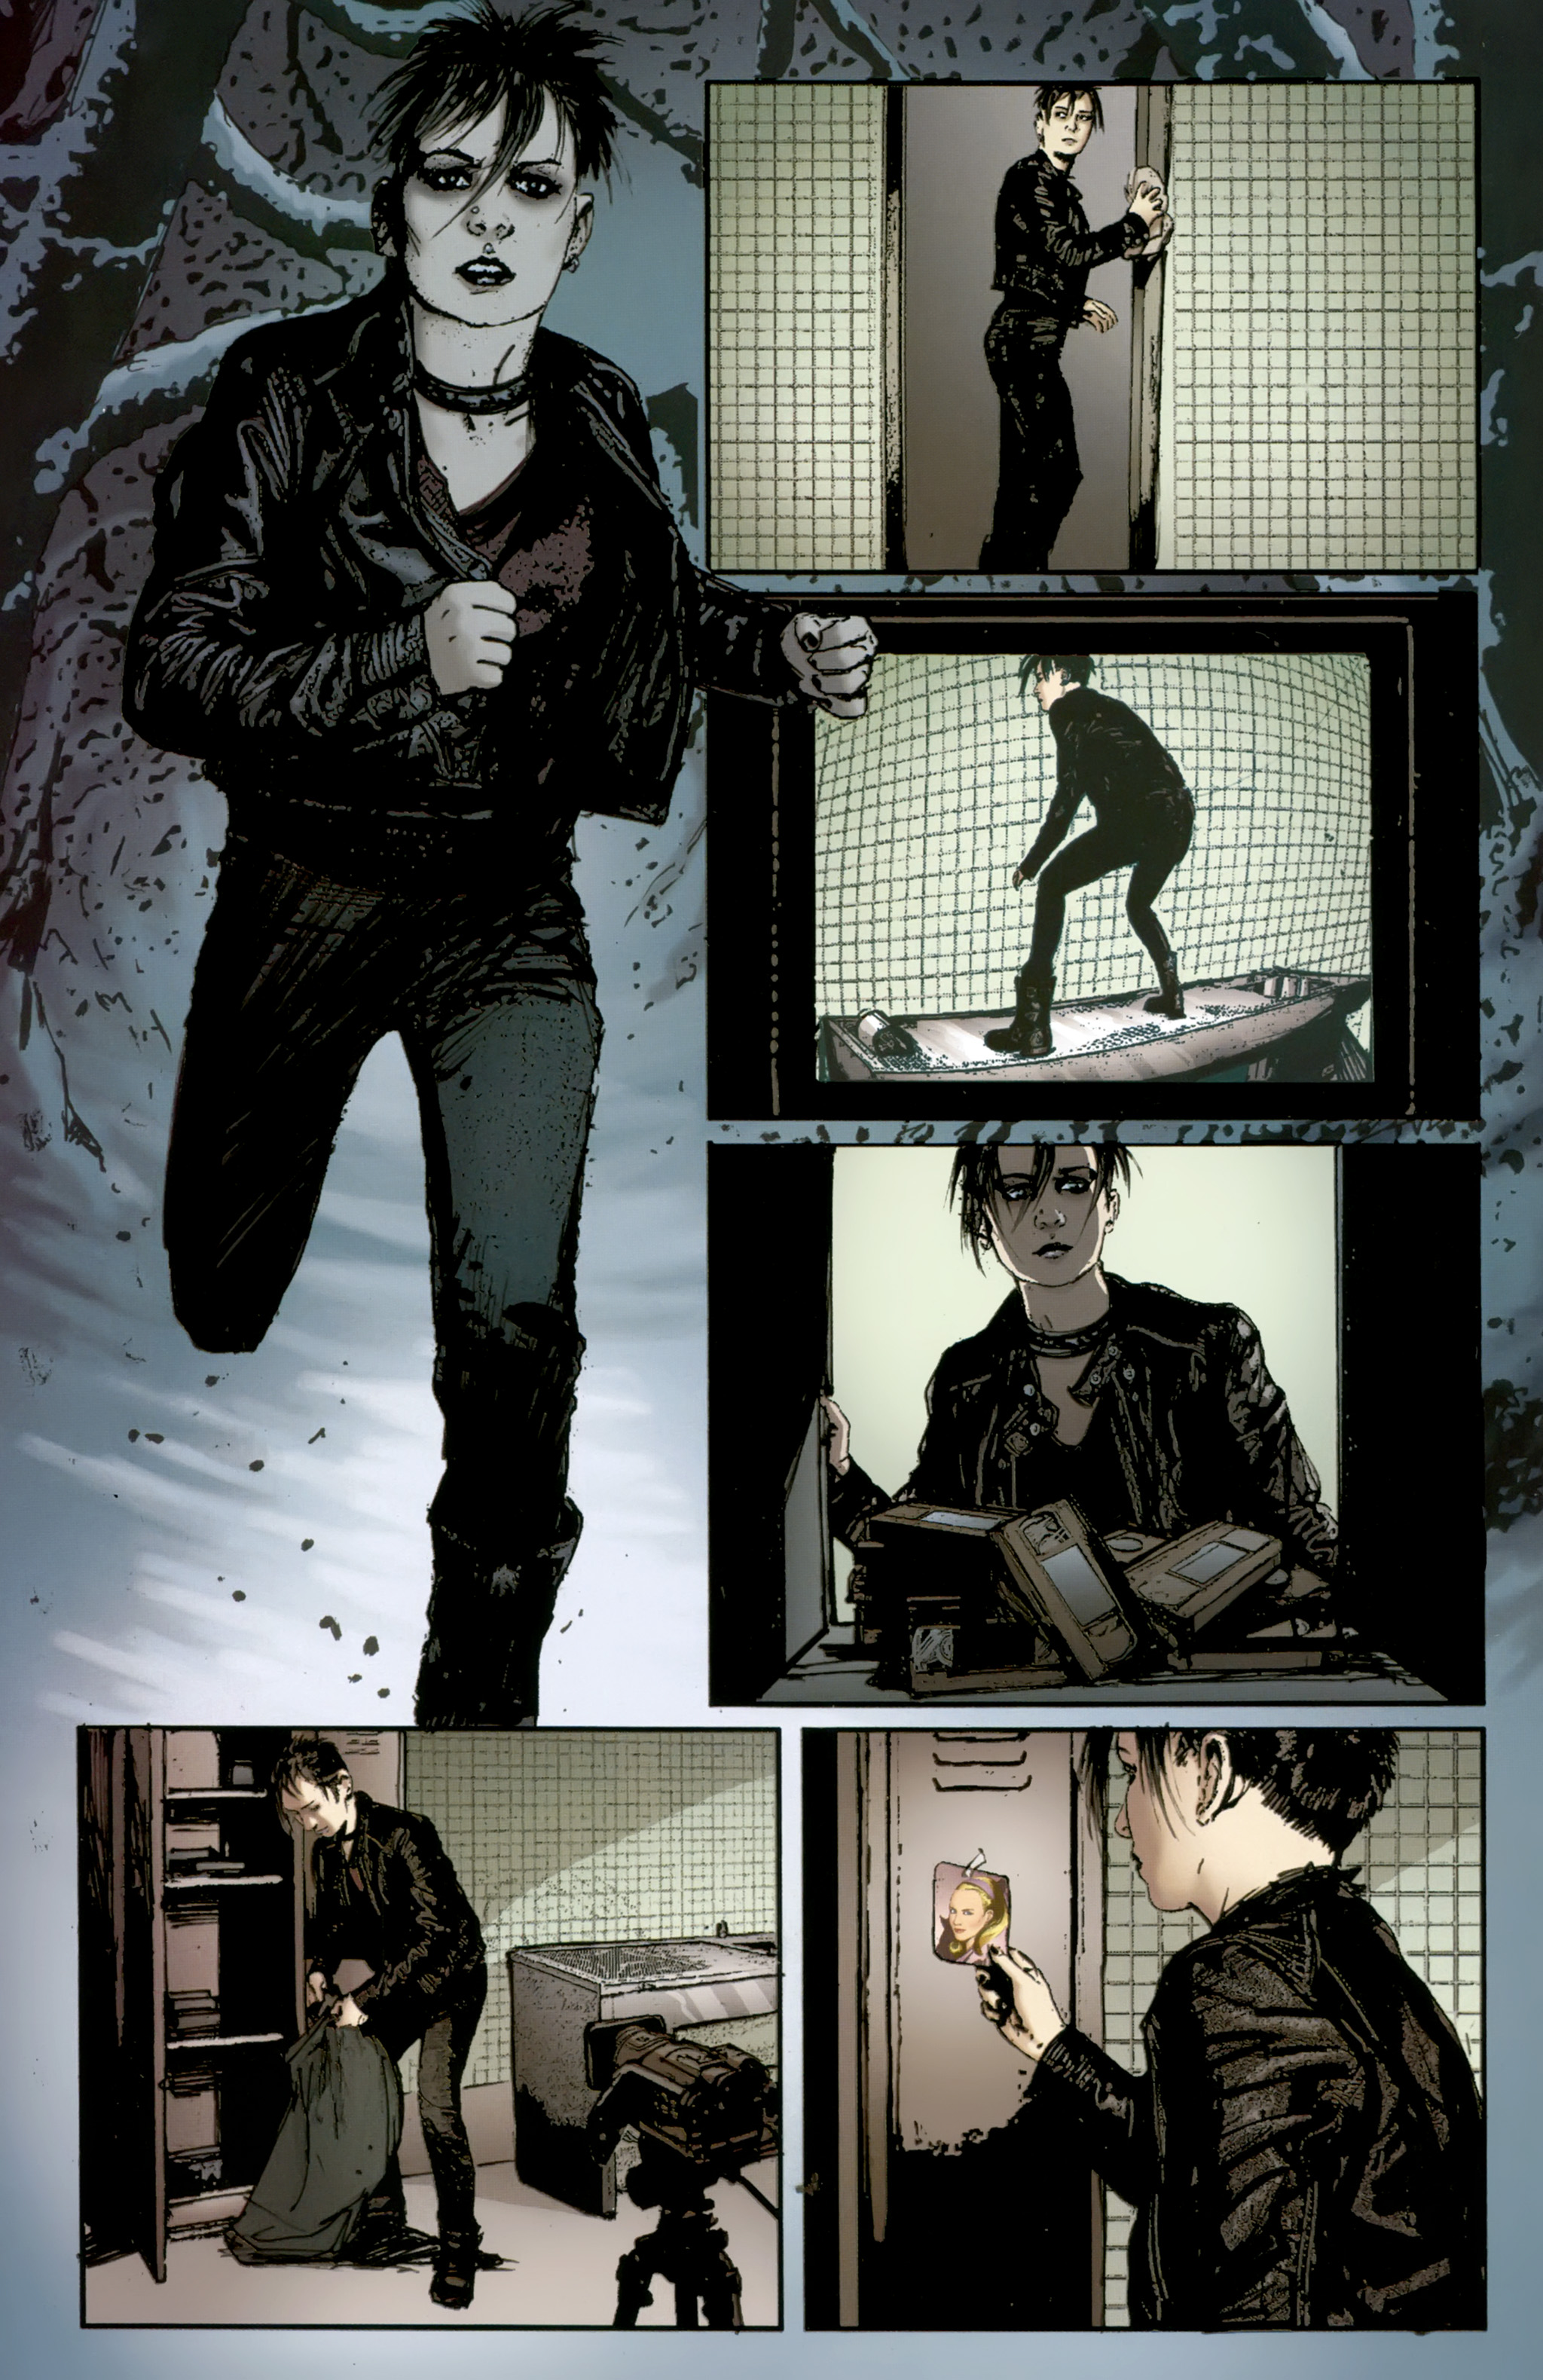 Read online The Girl With the Dragon Tattoo comic -  Issue # TPB 2 - 112